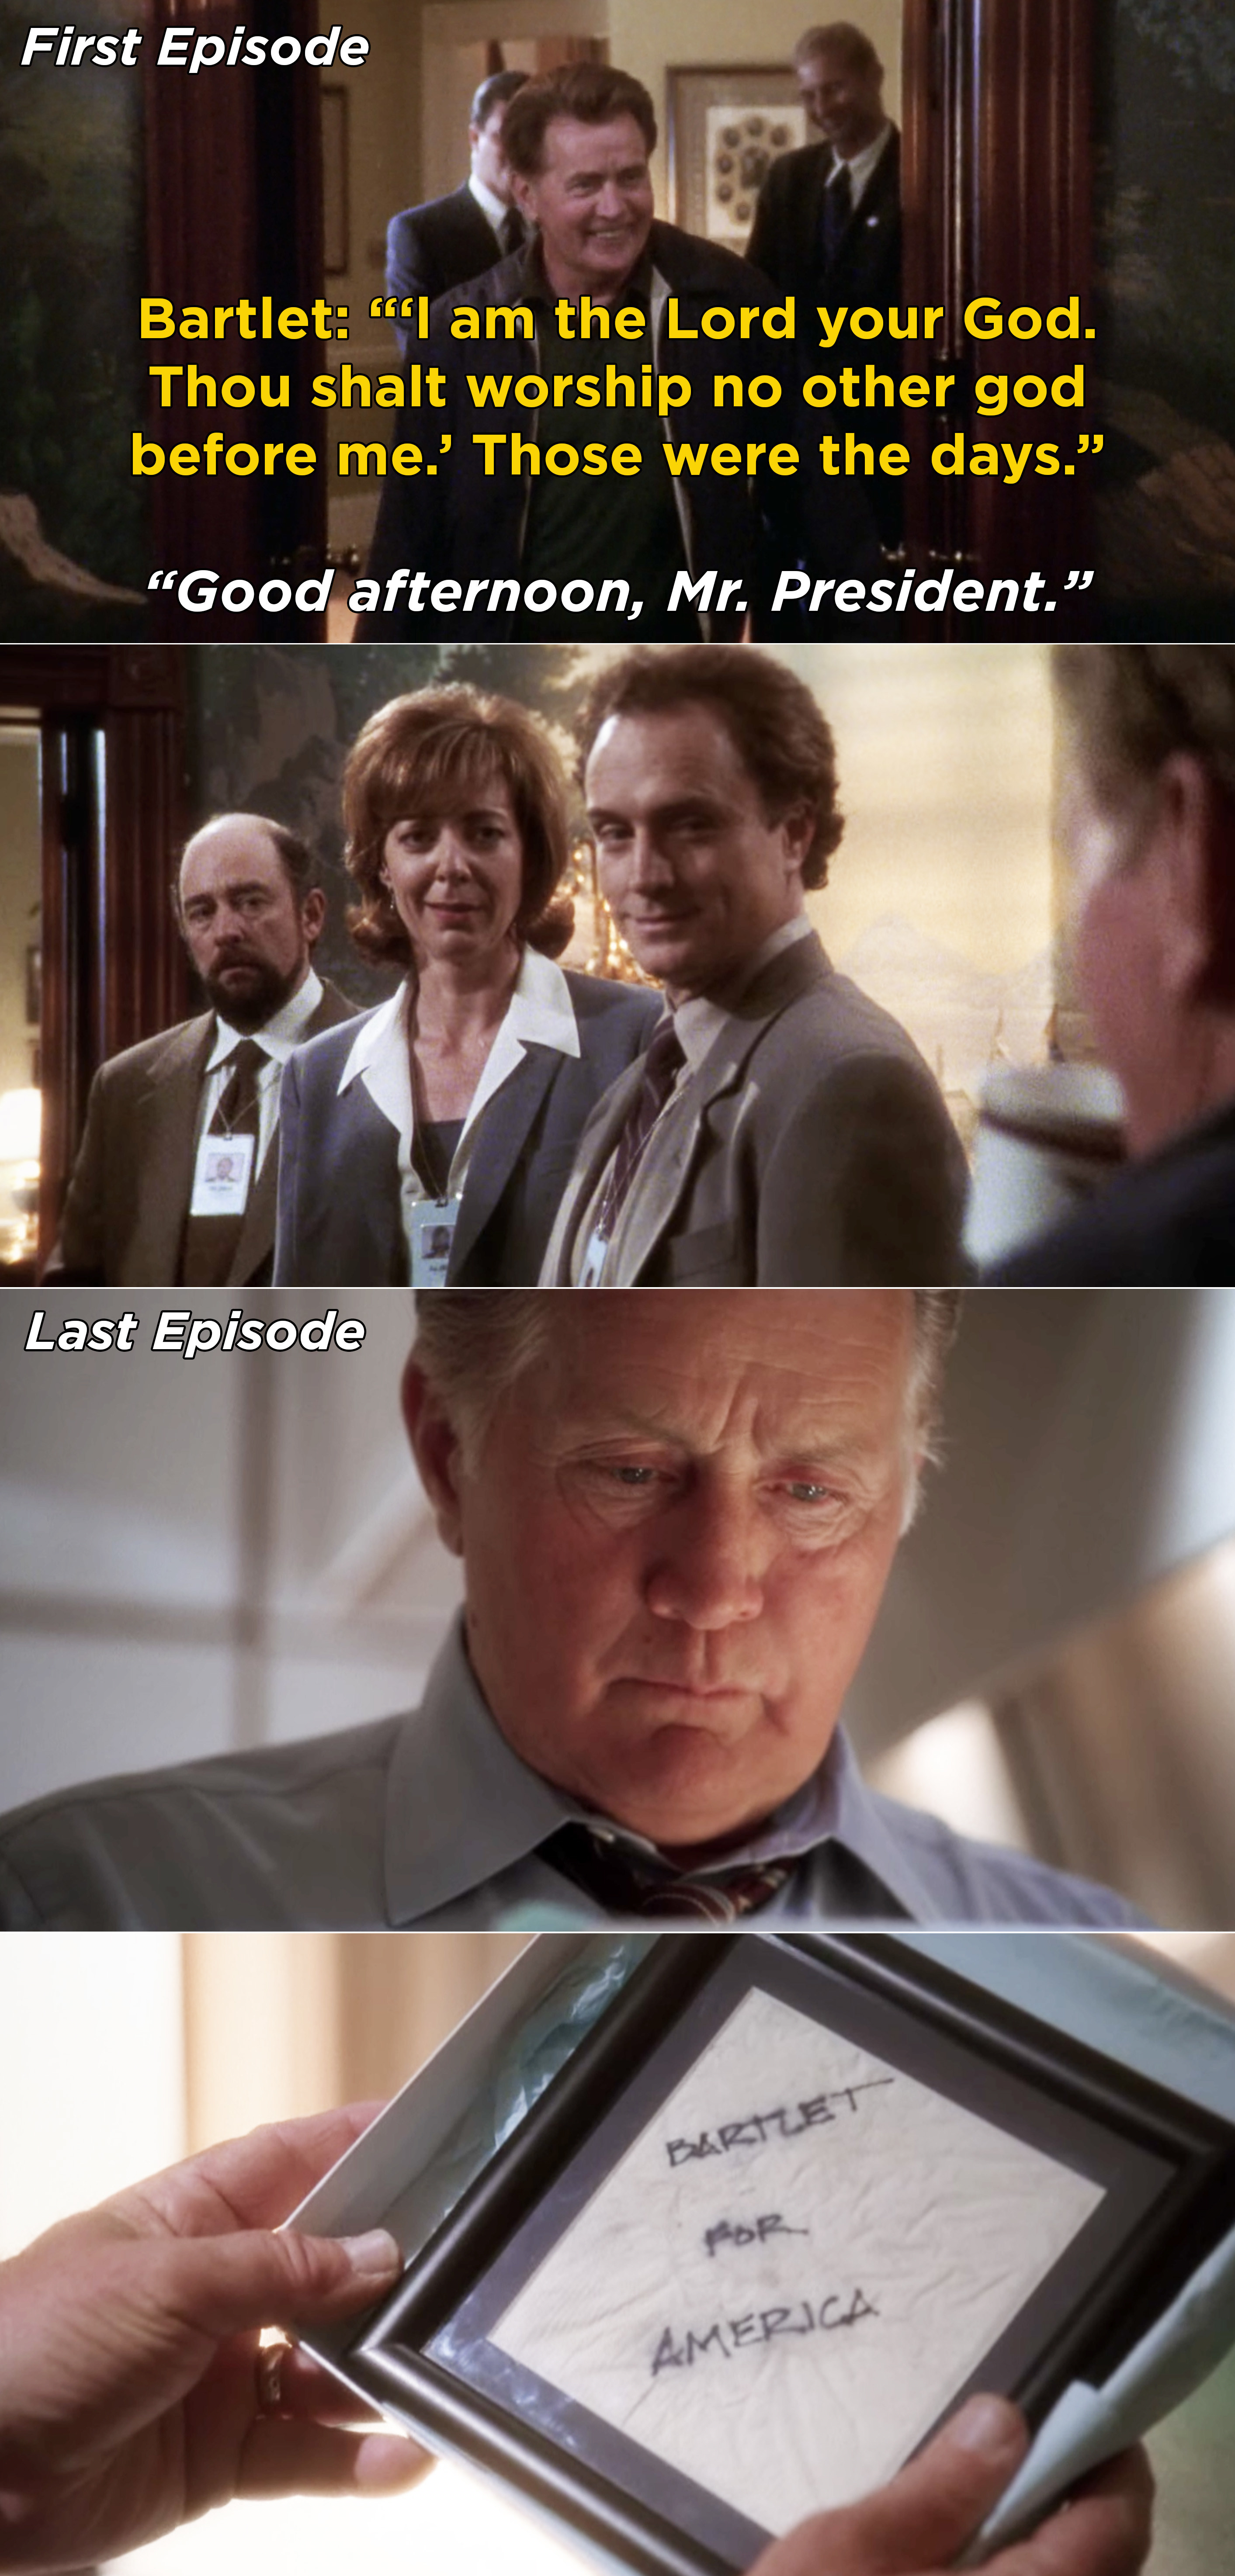 """Bartlet arriving and saying the first commandment vs. Bartlet's final scene where he reads the """"Bartlet for America"""" napkin"""